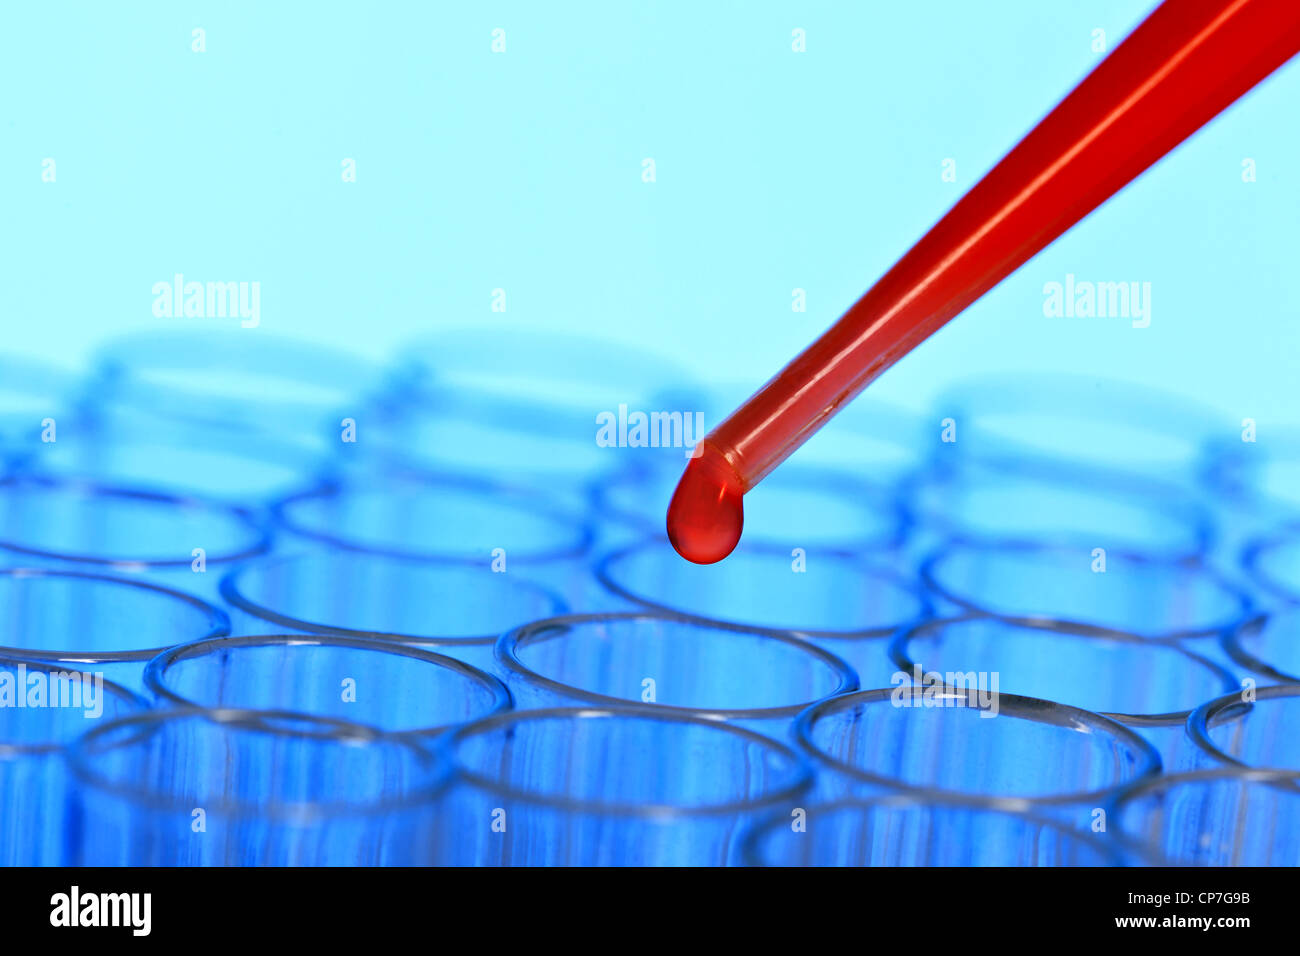 Close up photo of a group of test tubes with a red droplet about to drop from a pipette. - Stock Image